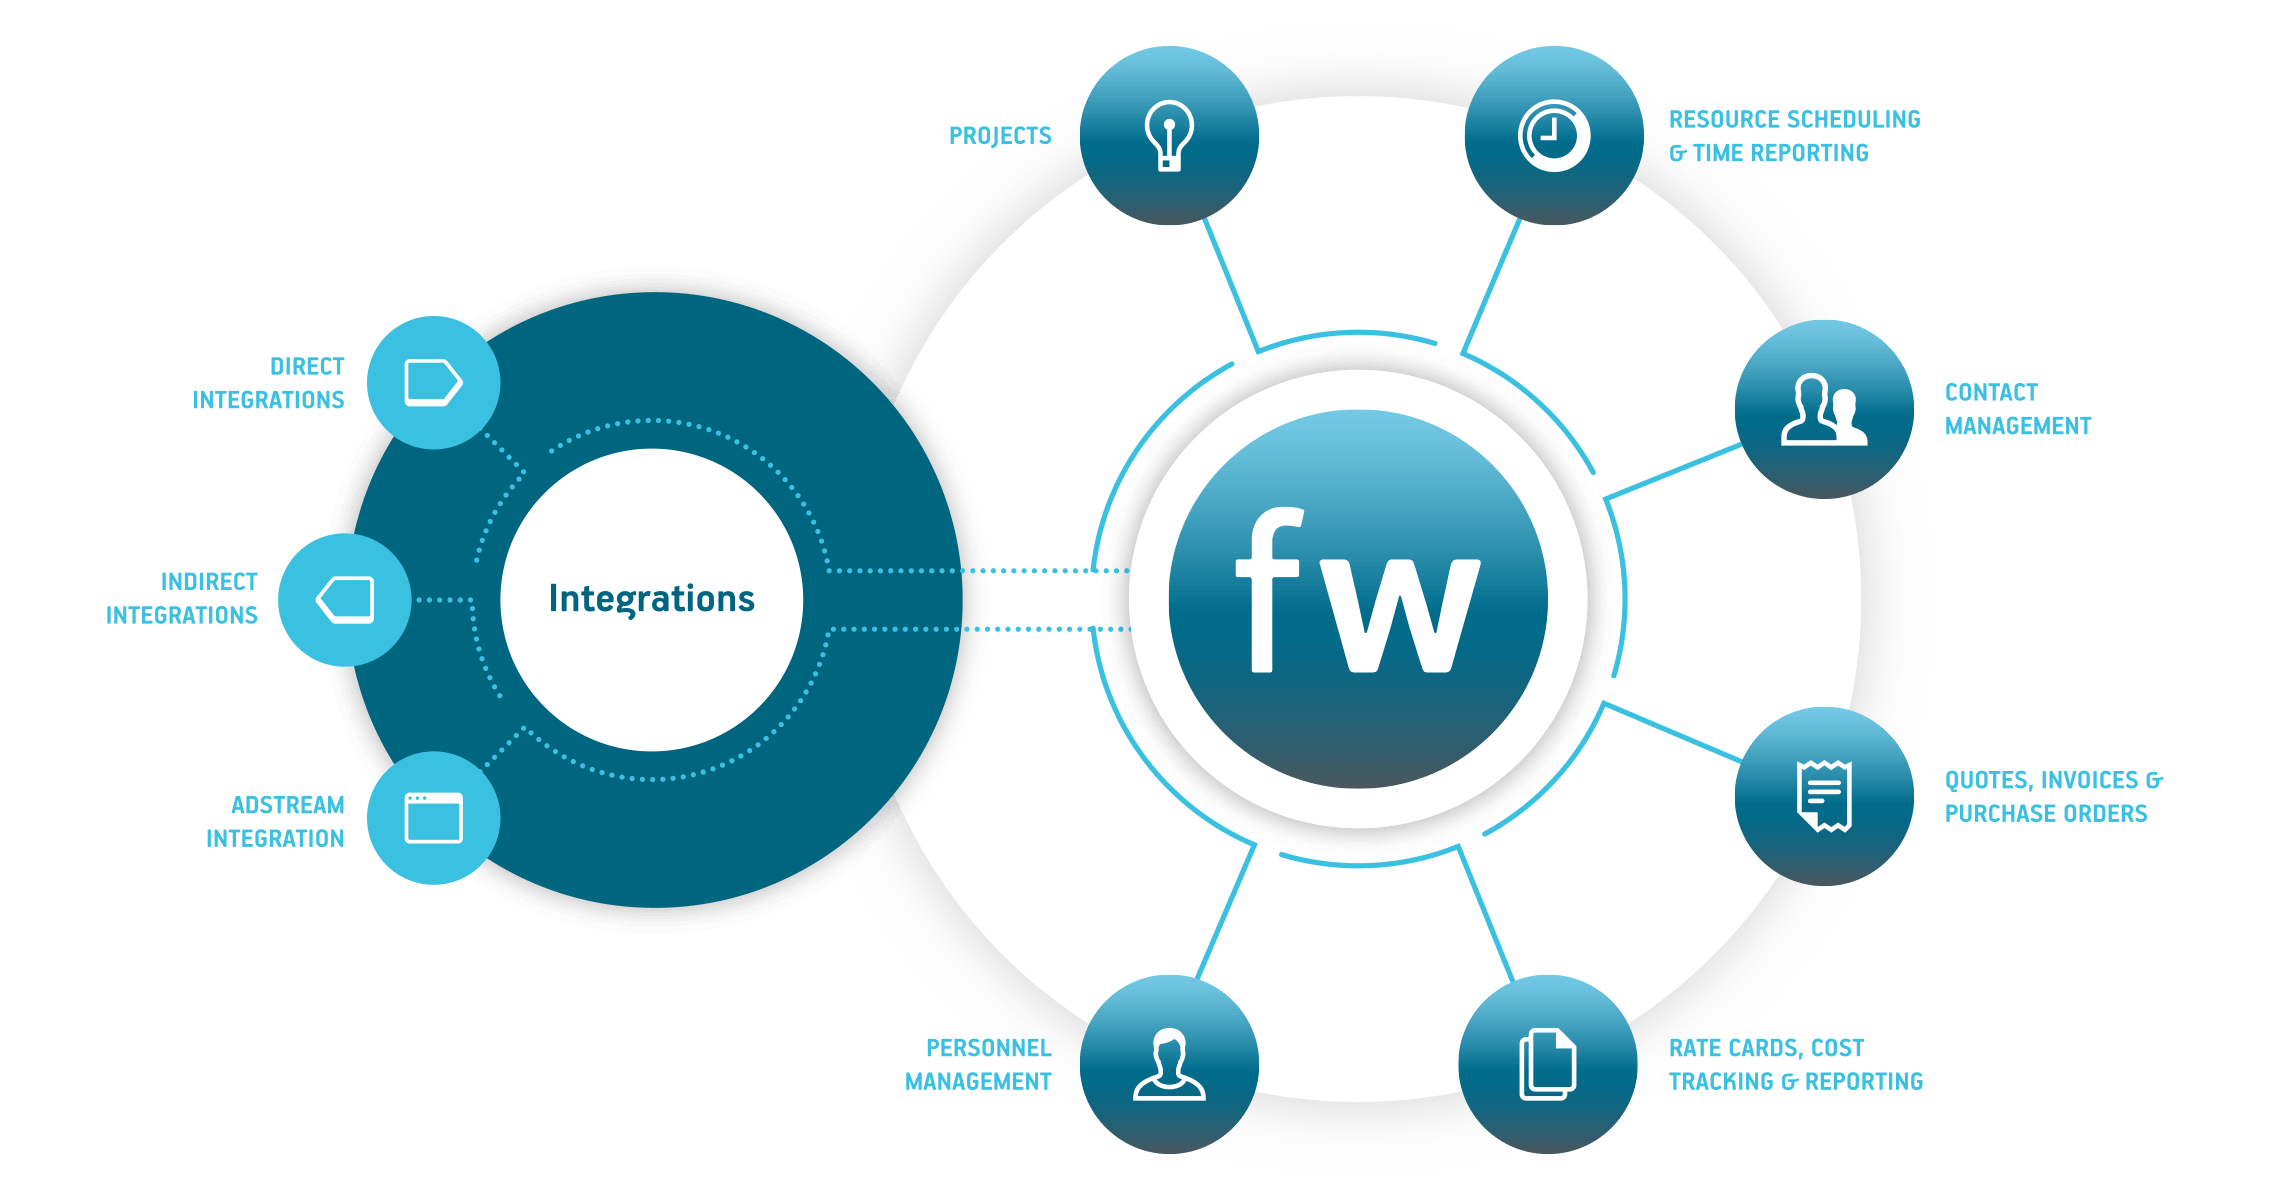 farmerswife project and scheduling features for Media Industry software integrations